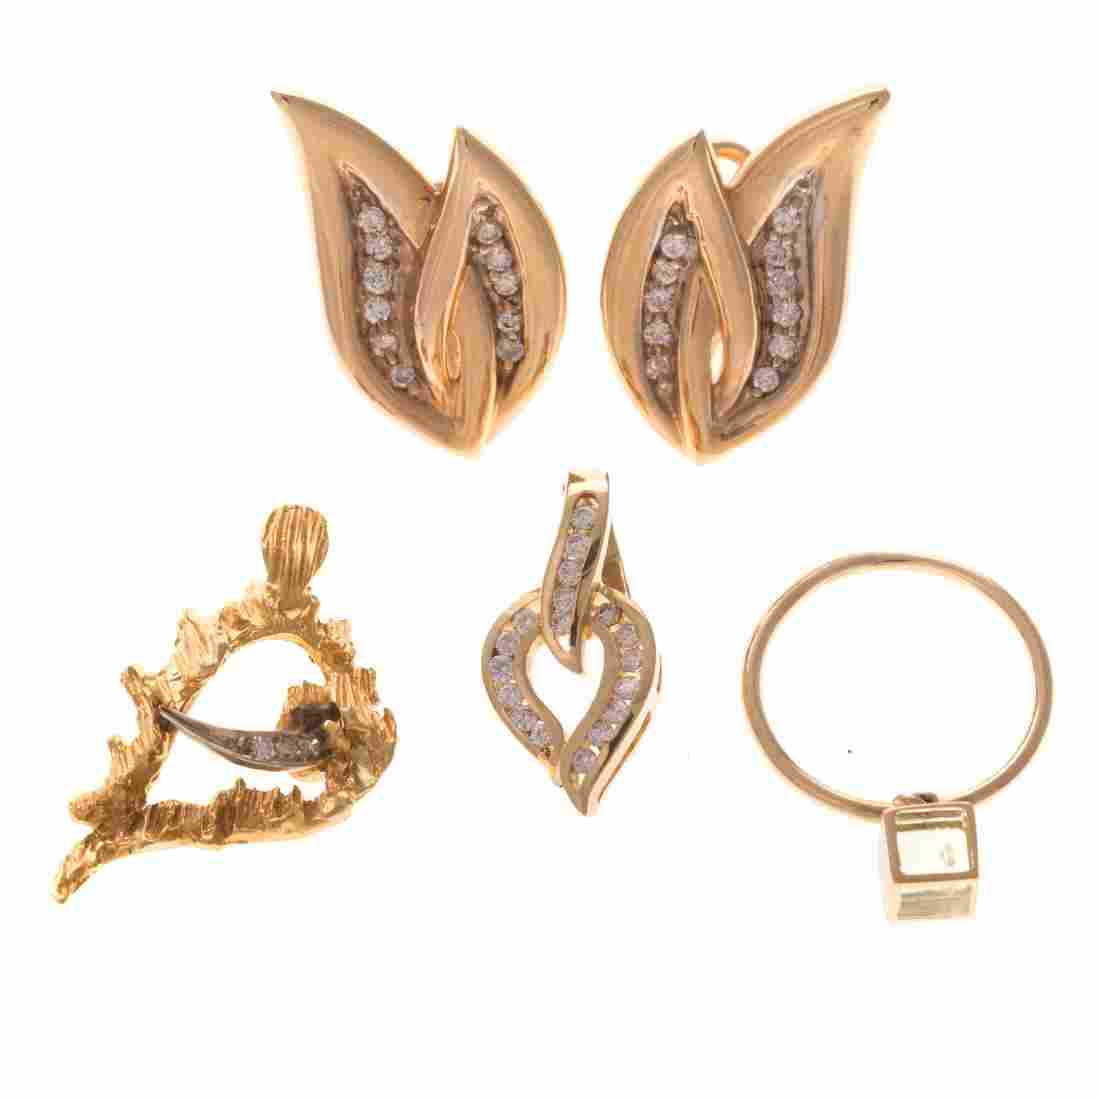 A Collection of Lady's Gold & Diamond Jewelry